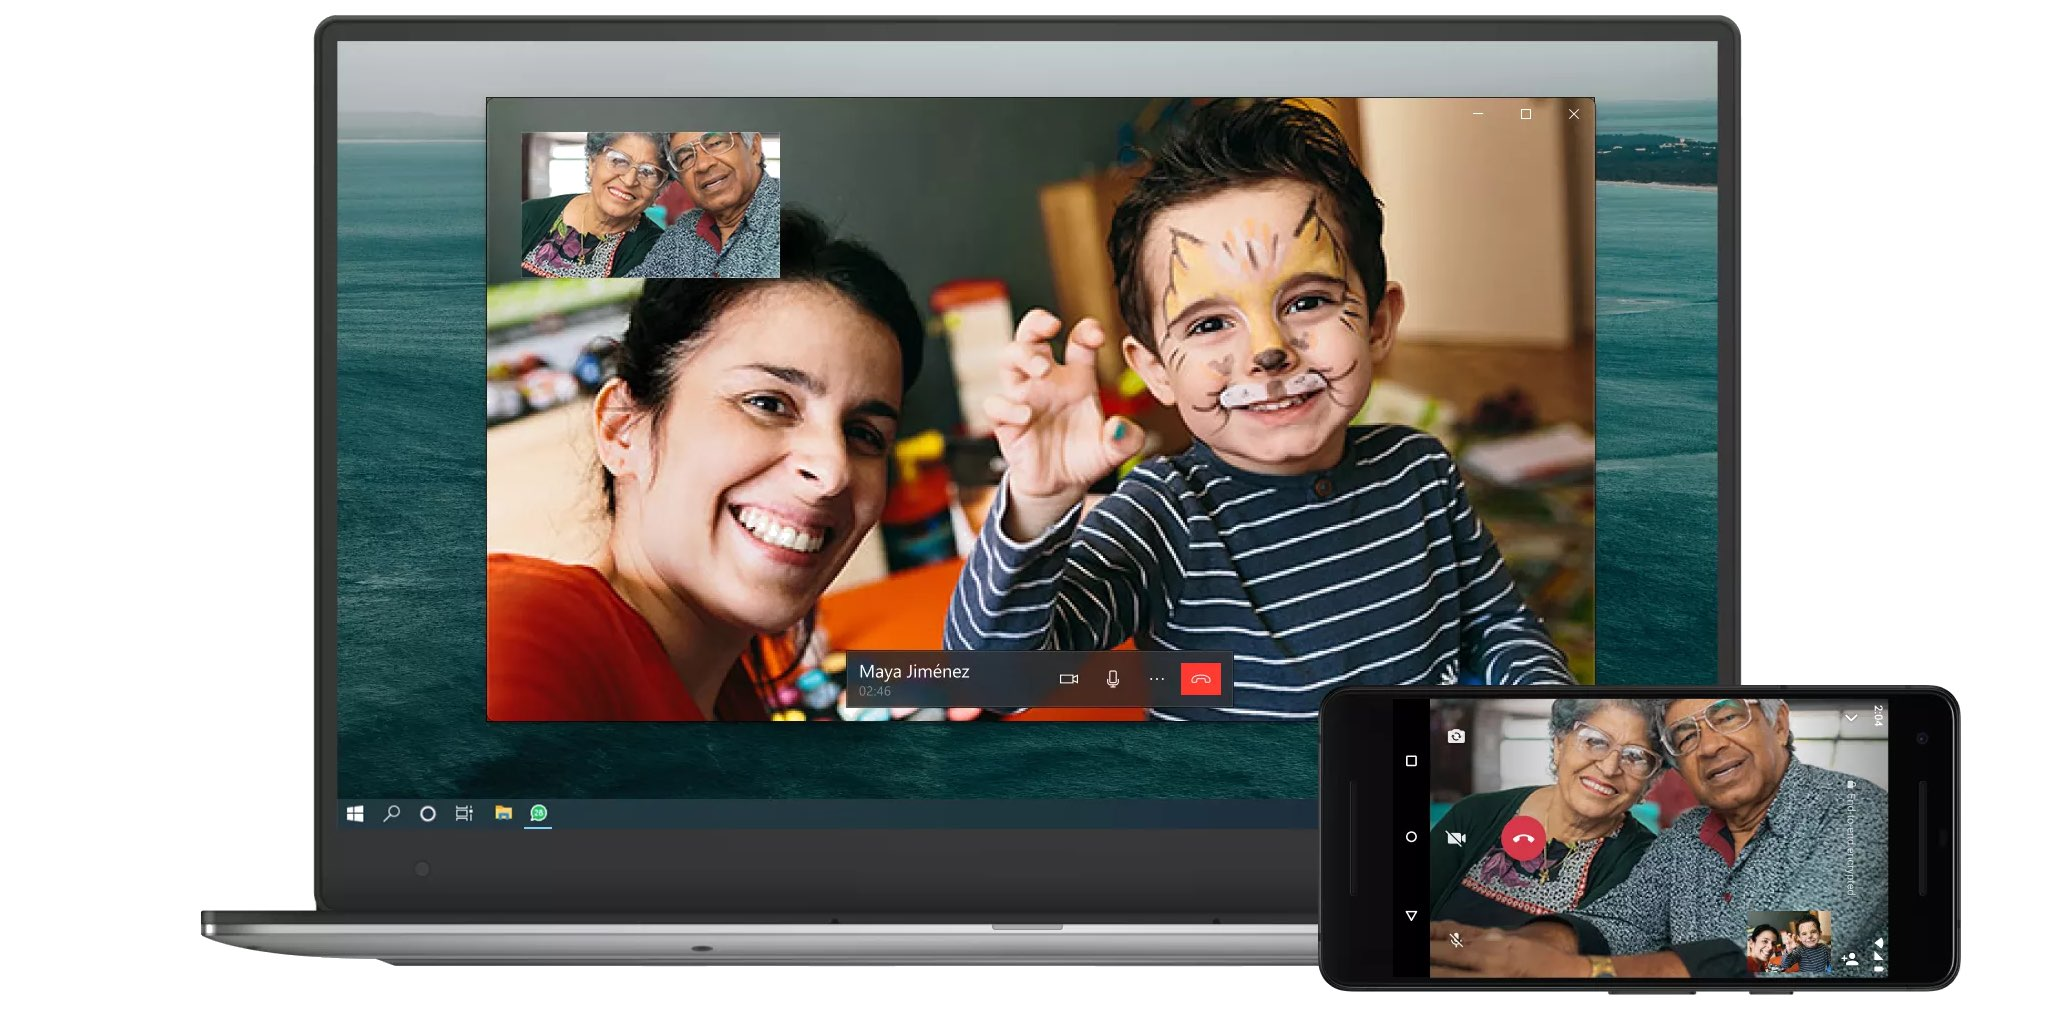 A promotional image demonstrating voice and video calls on WhatsApp Desktop